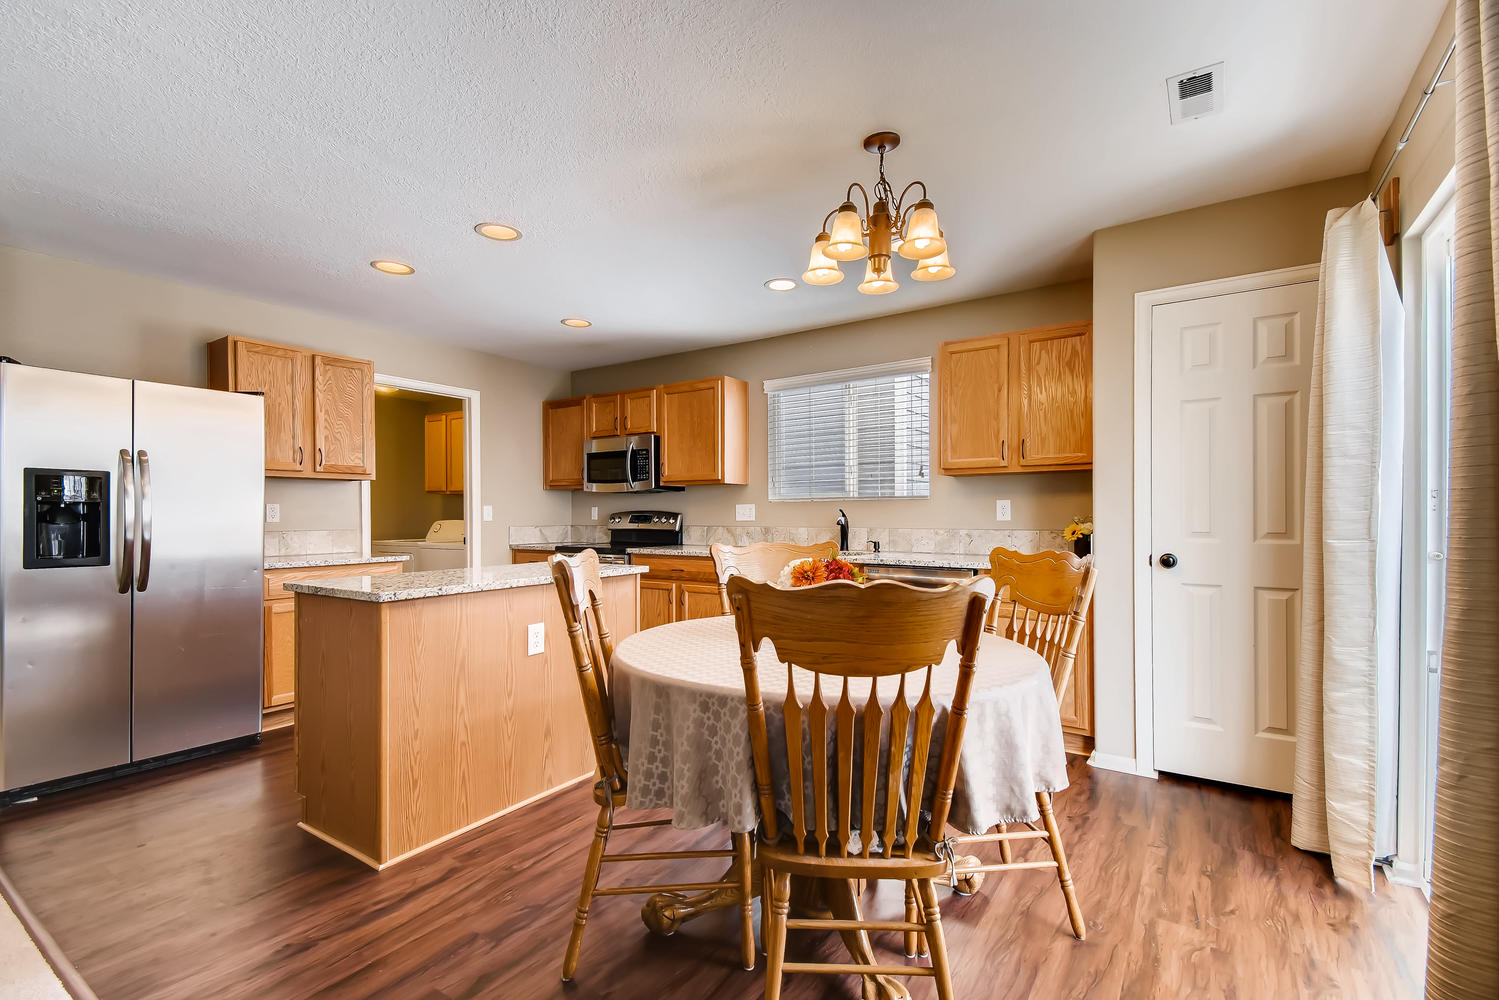 REAL ESTATE LISTING: 10595 Forester Pl Longmont CO Eating Area and Kitchen